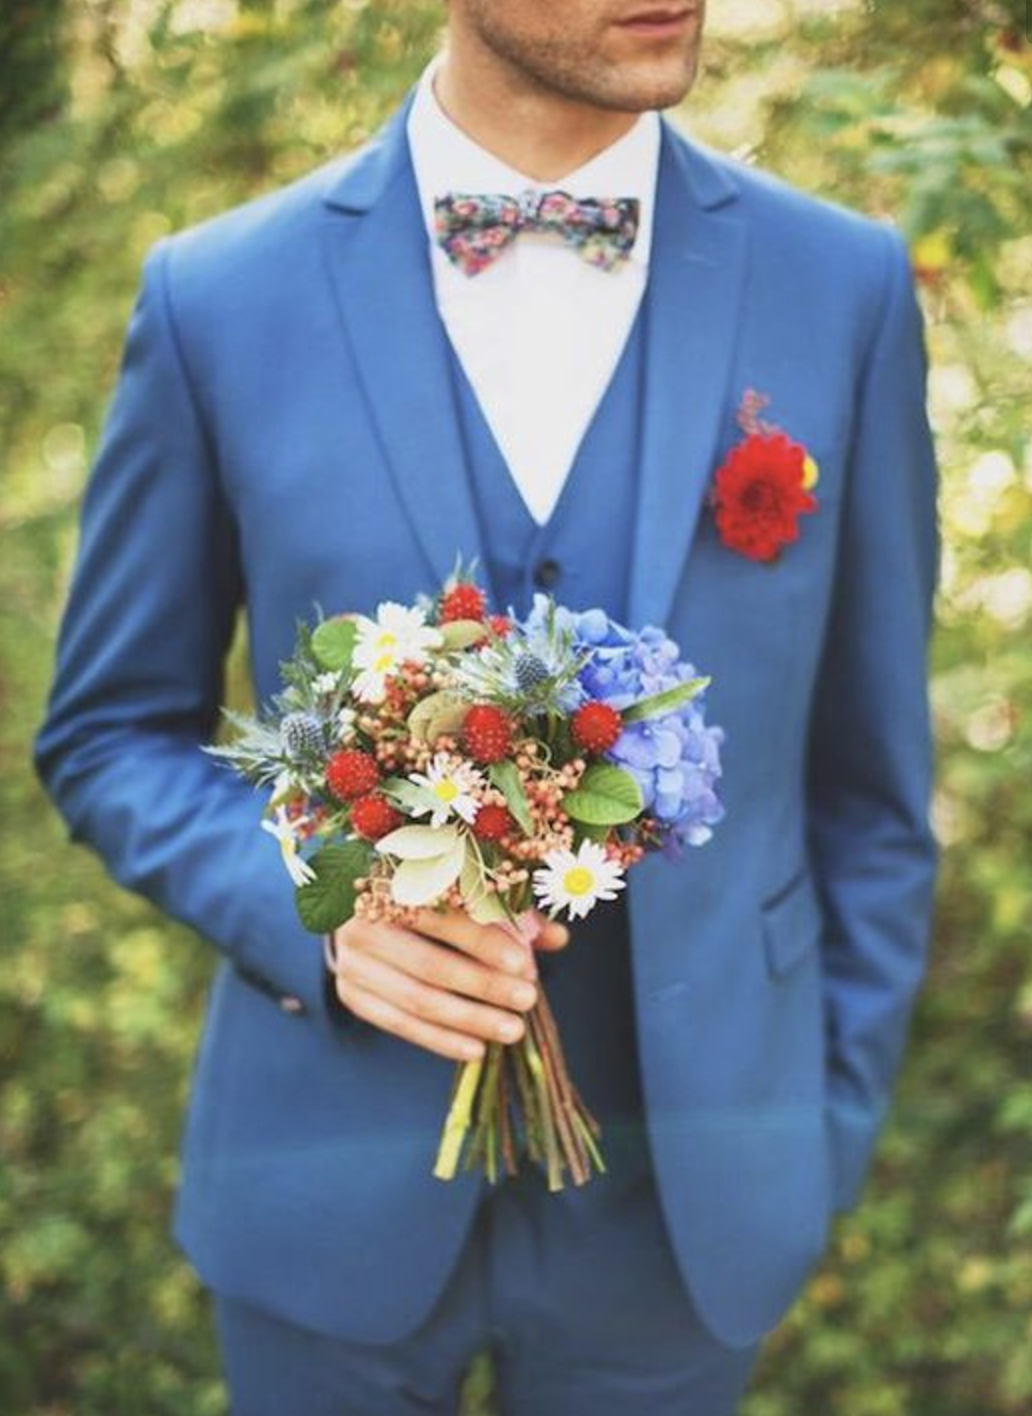 12 summer wedding suit ideas for grooms | Pinterest | Summer wedding ...